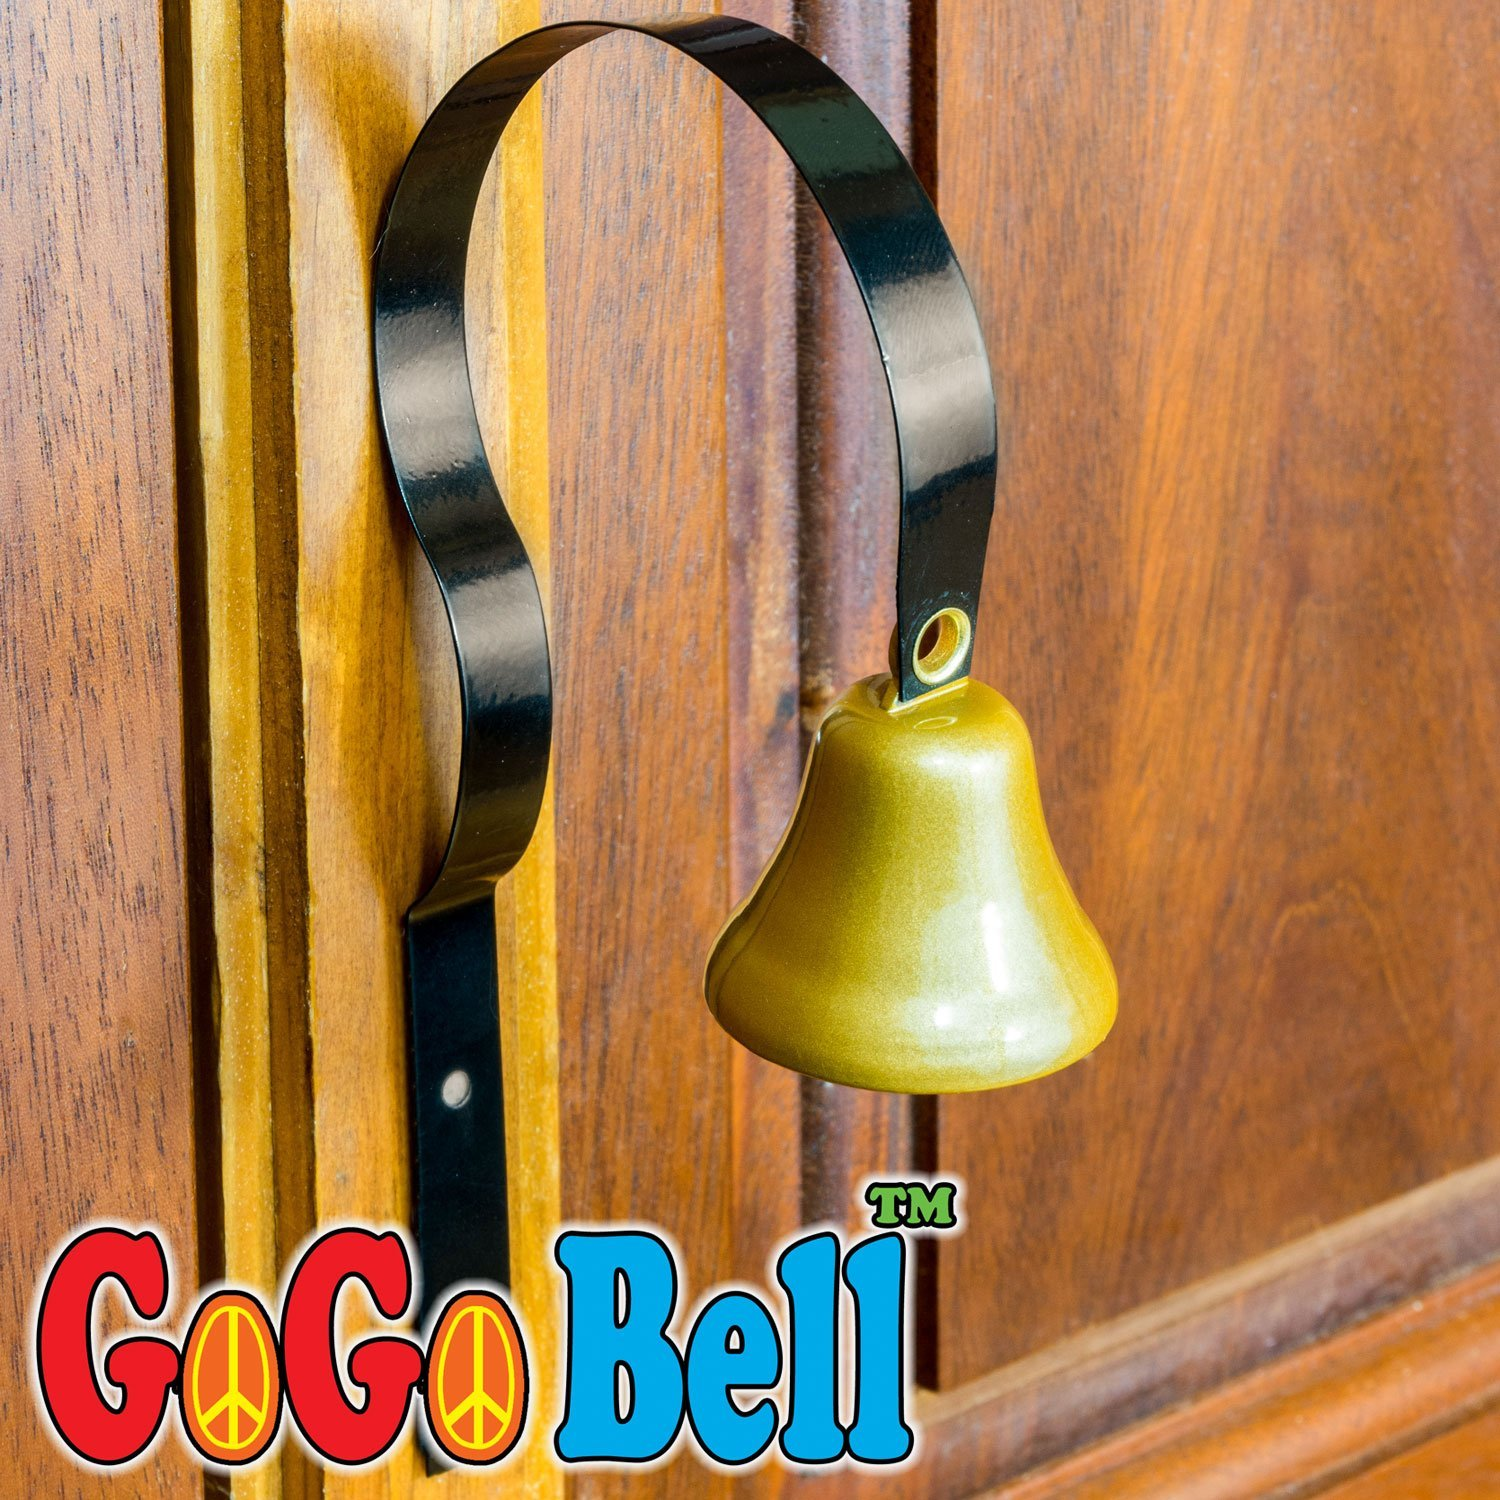 GoGo Bell Dog Doorbell for Housebreaking / Housetraining / Potty Training Your Poochie to Let You Know When they Need to Tinkle